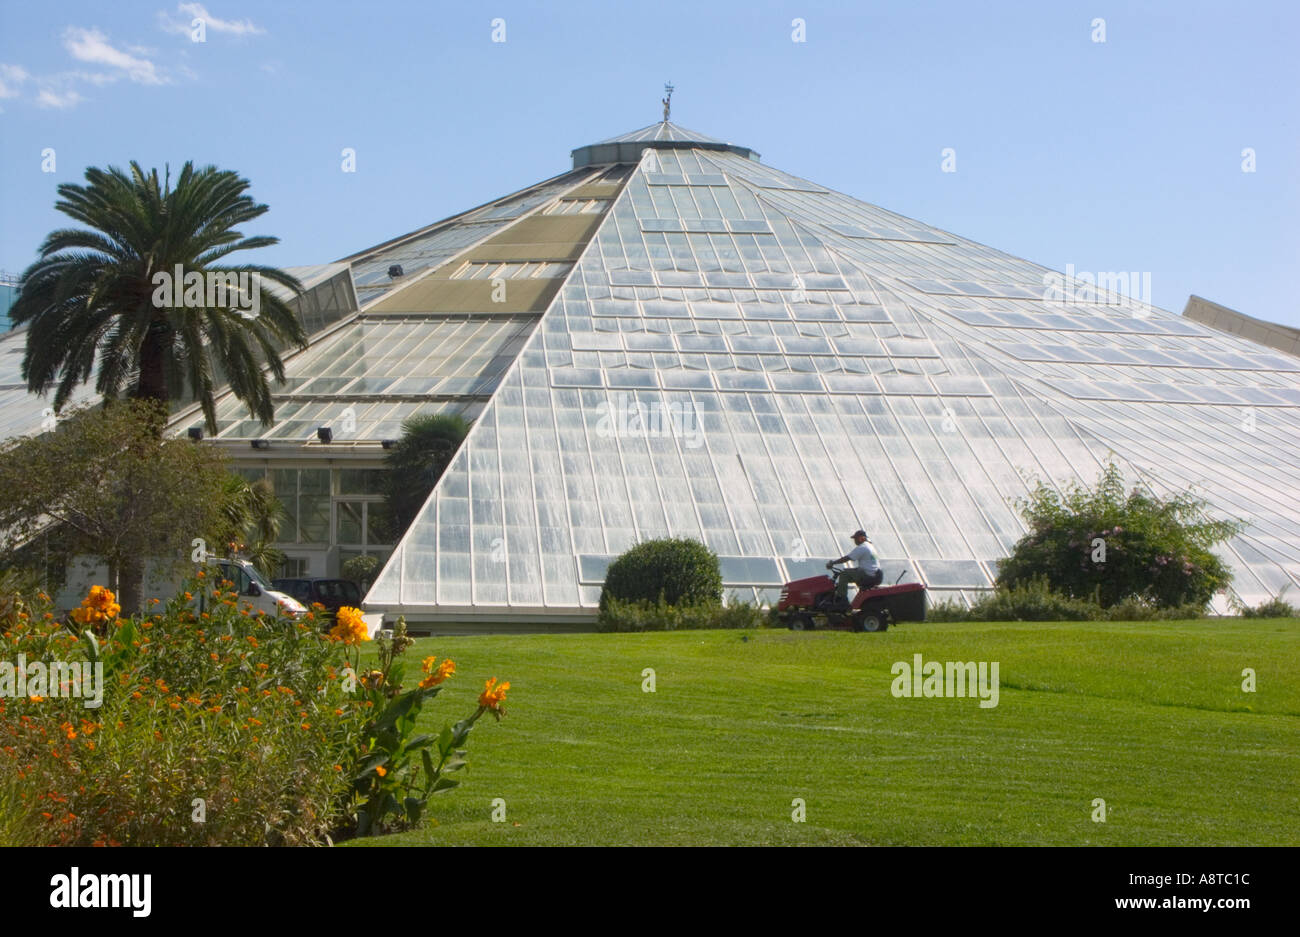 Mowing lawns at parc phoenix nice france with glasshouse